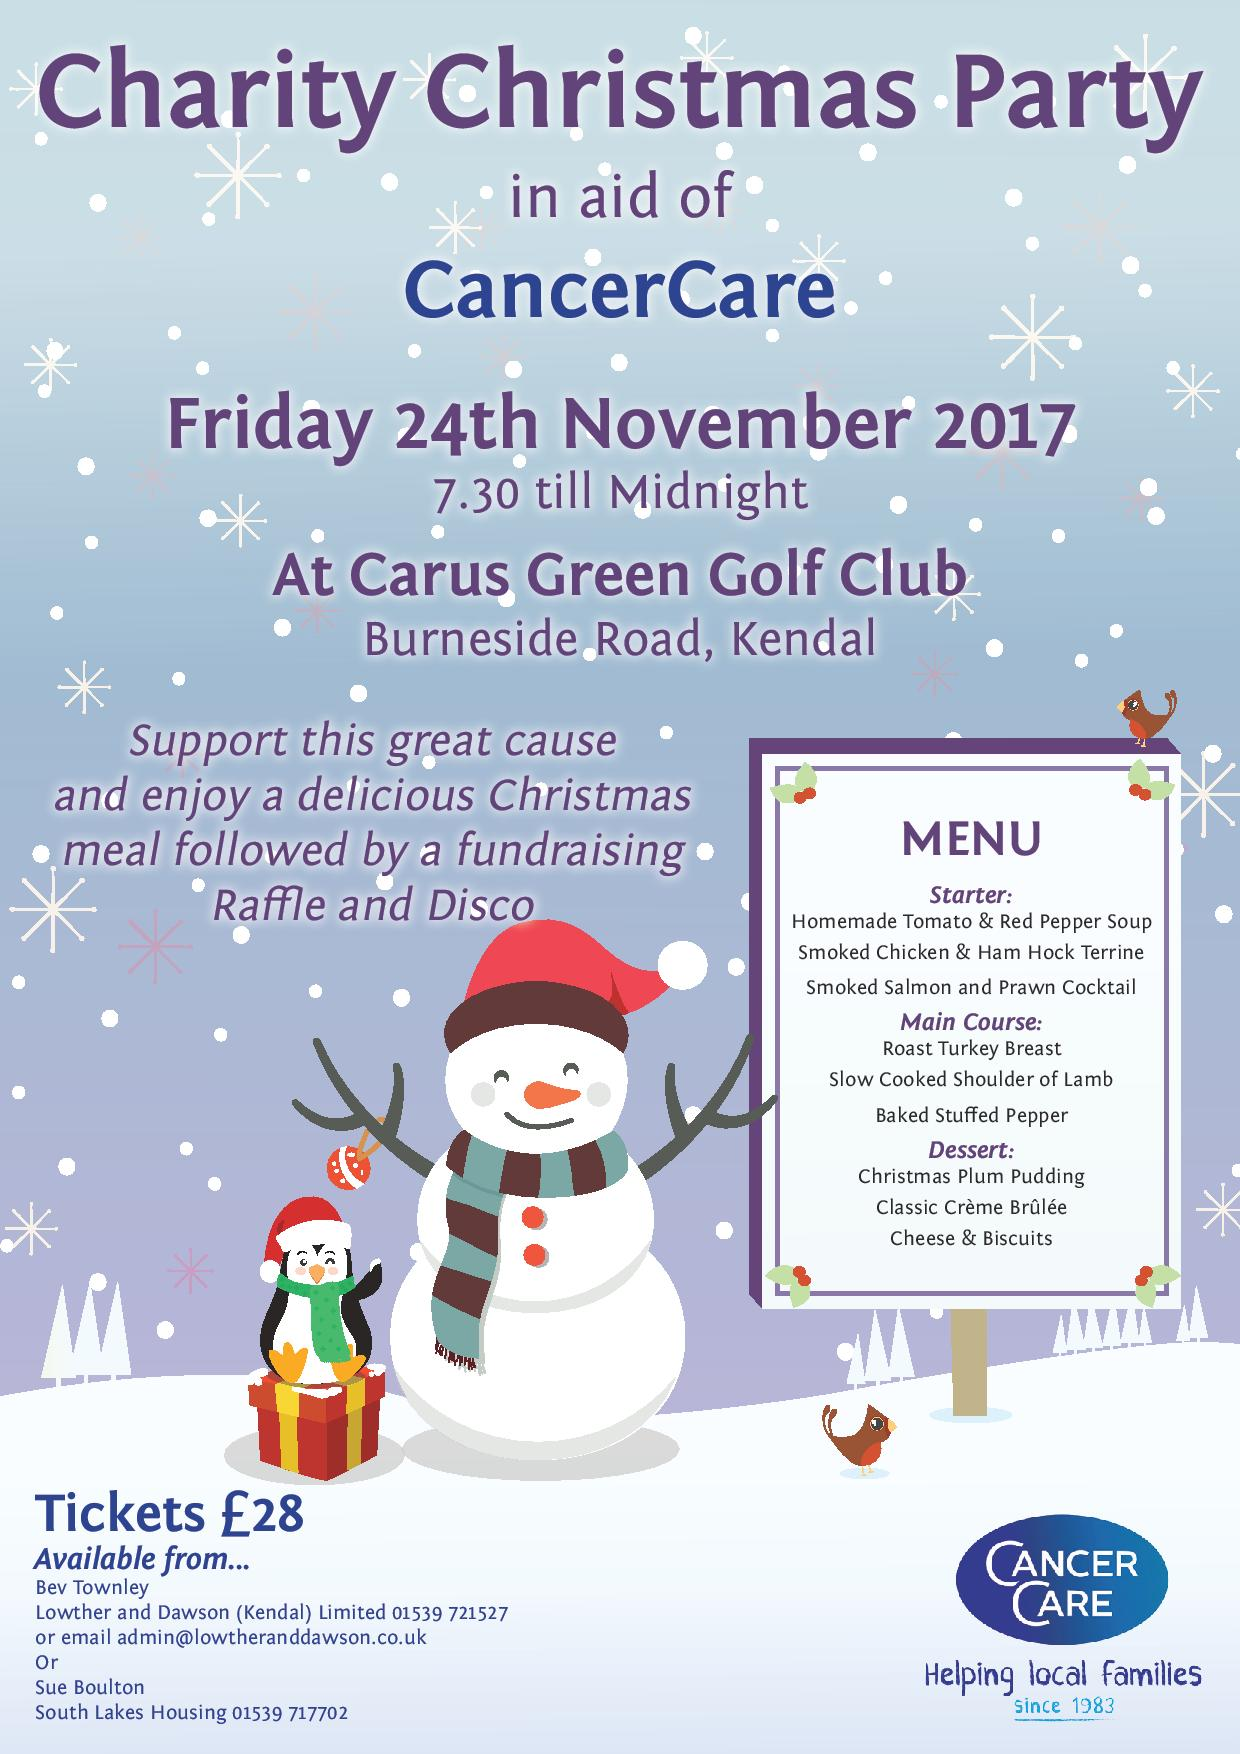 Charity Christmas Party in aid of CancerCare